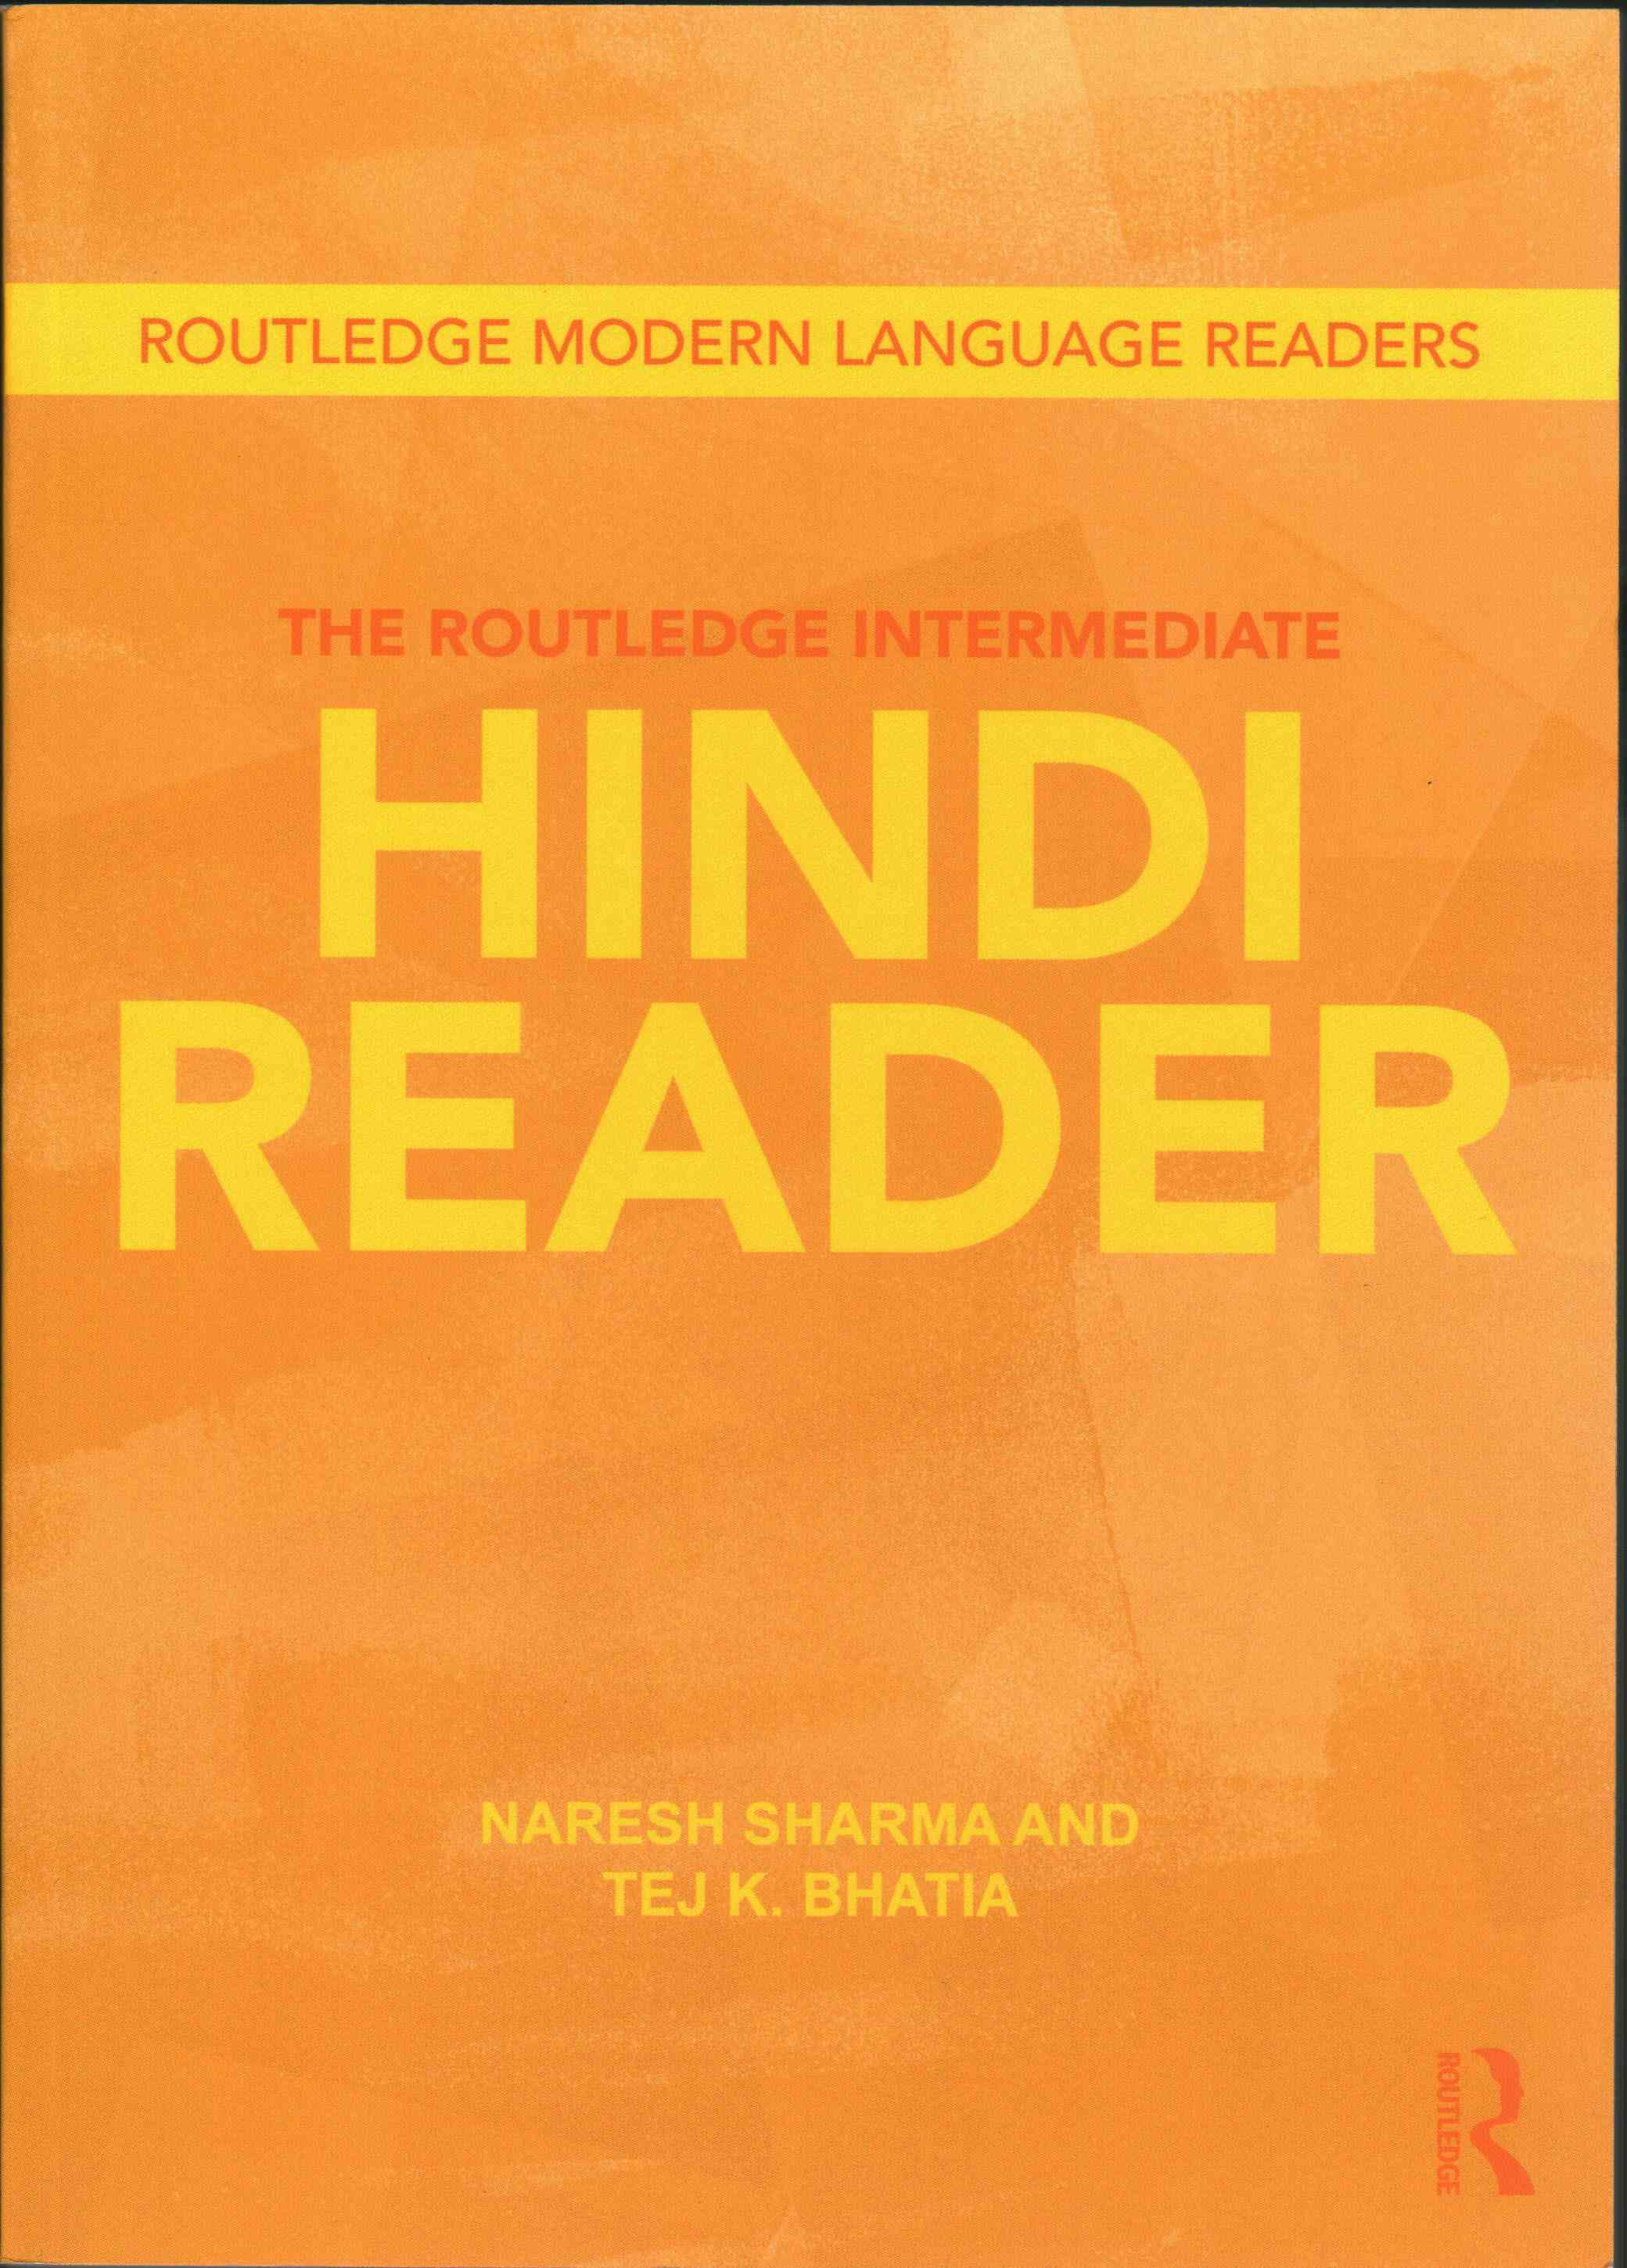 The Routledge Intermediate Hindi Reader By Sharma, Naresh/ Bhatia, Tej K.